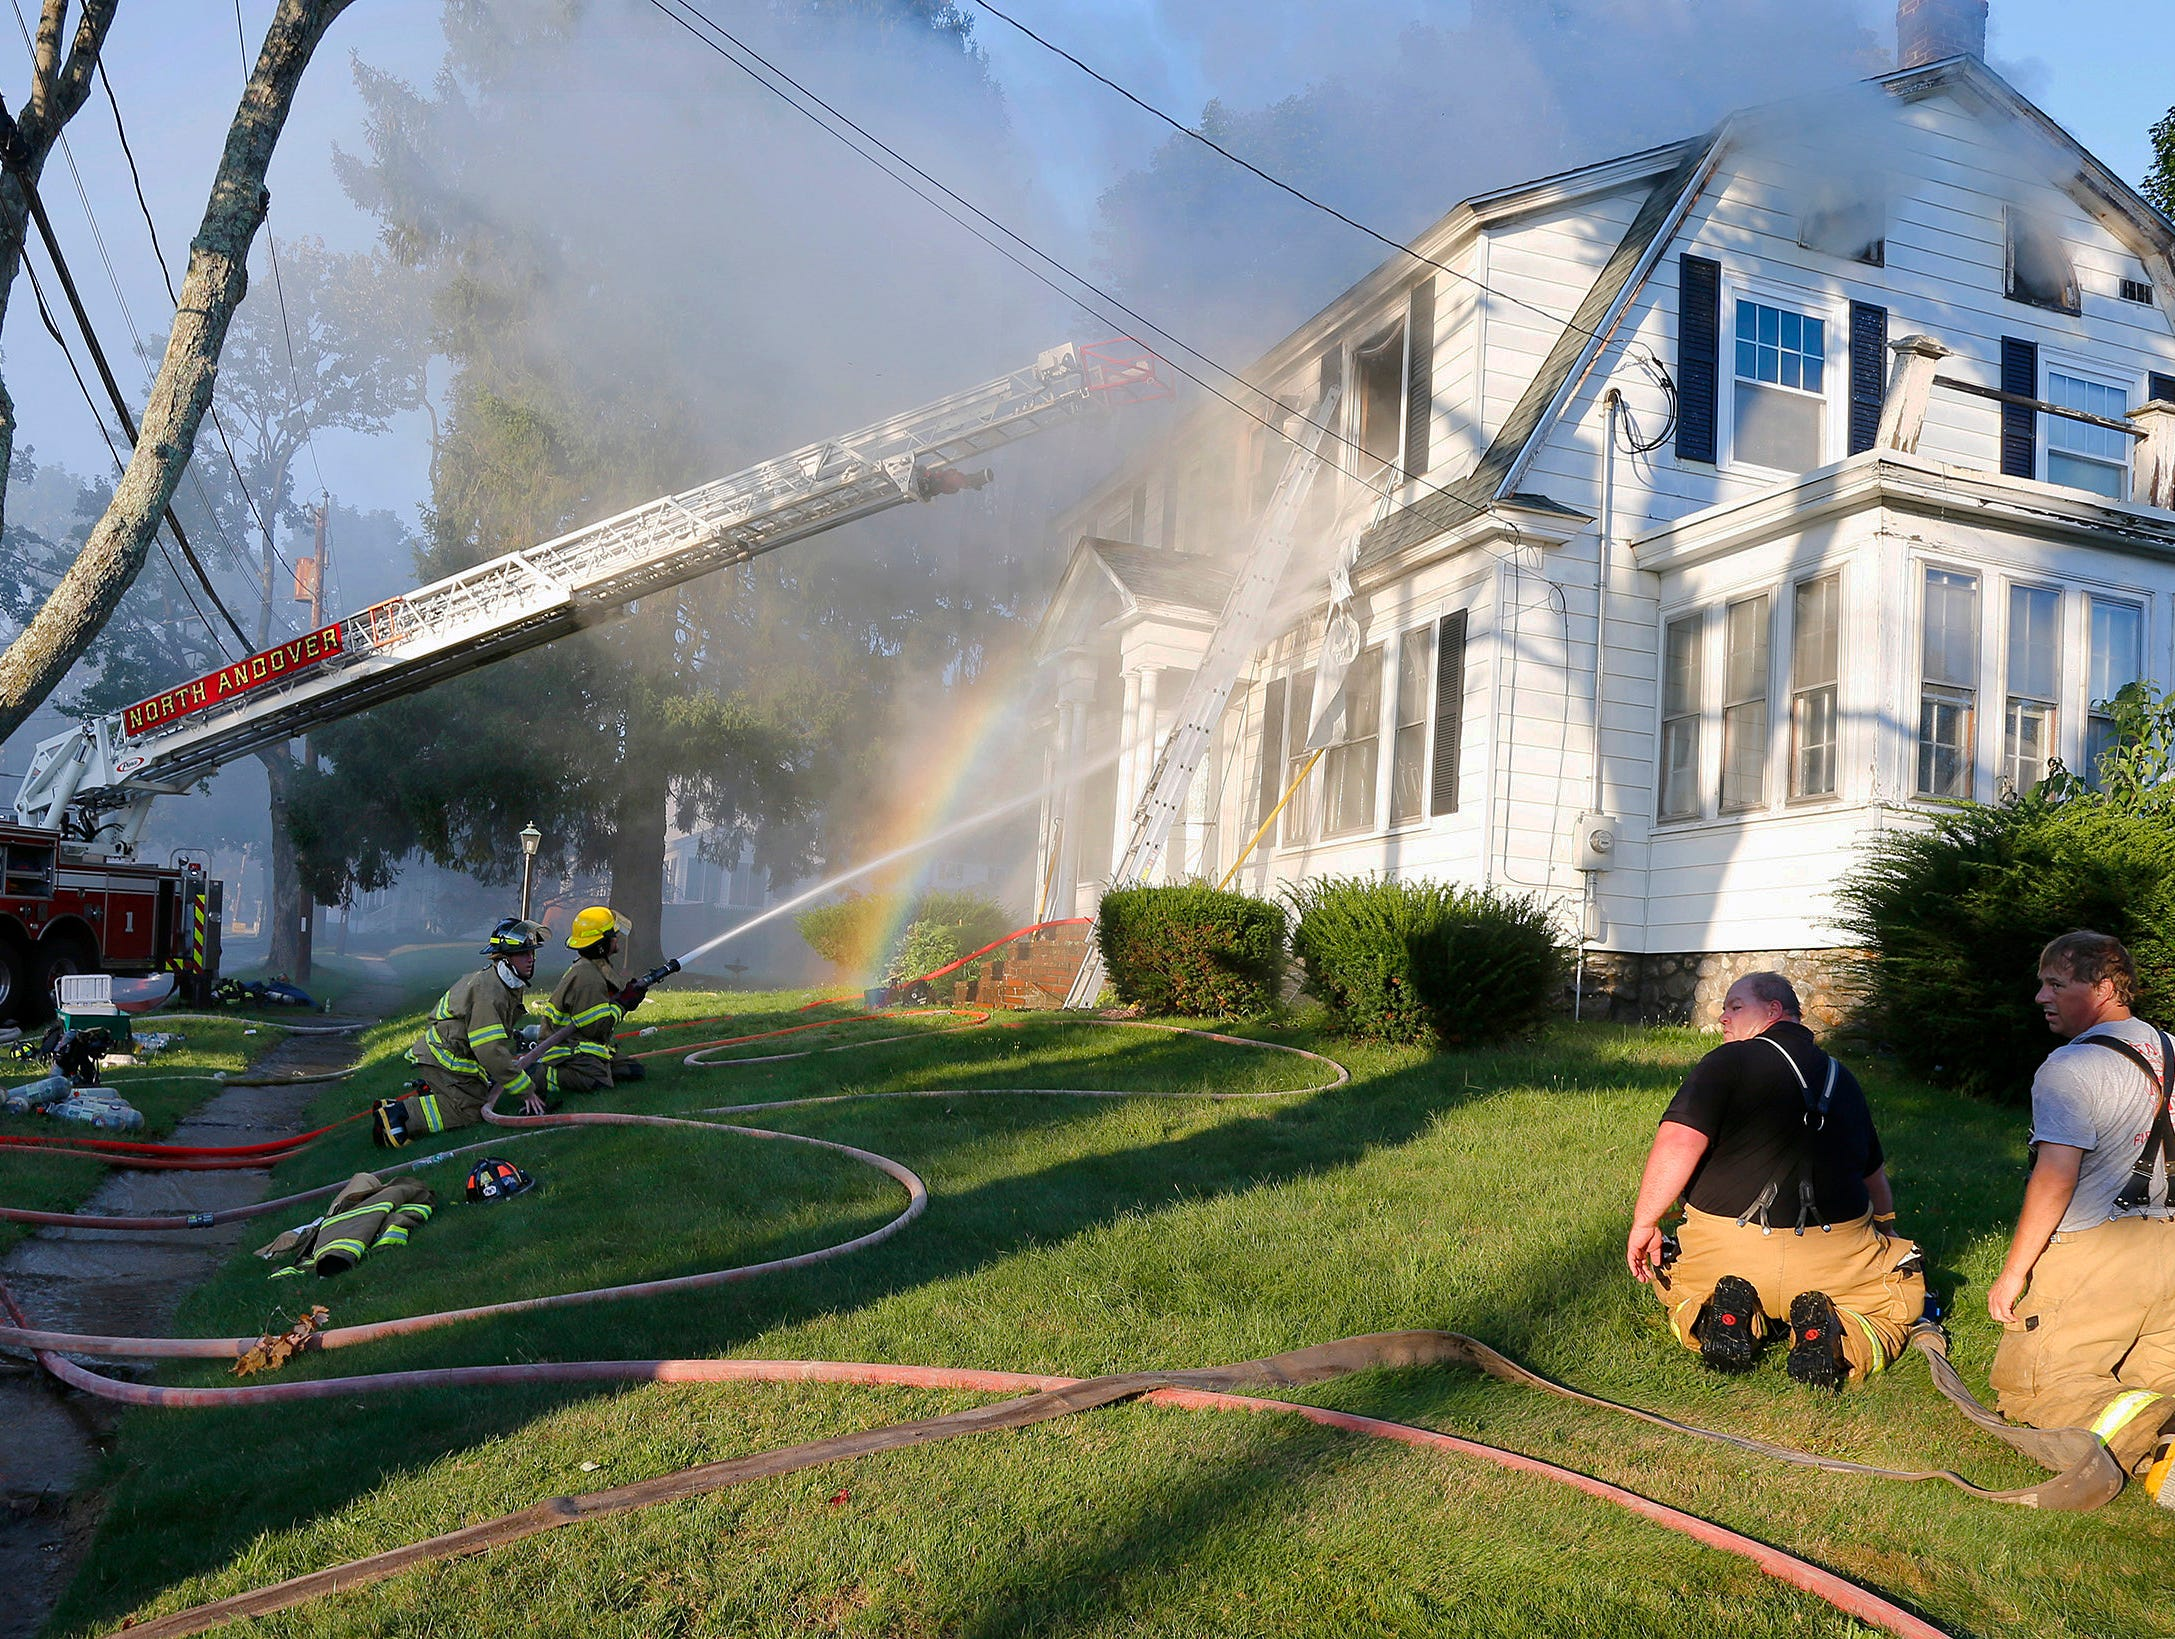 Firefighters battle a house fire, Thursday, Sept. 13, 2018, on Herrick Road in North Andover, Mass., one of multiple emergency crews responding to a series of possible gas explosions and fires triggered by a problem with a gas line that feeds homes in several communities north of Boston.